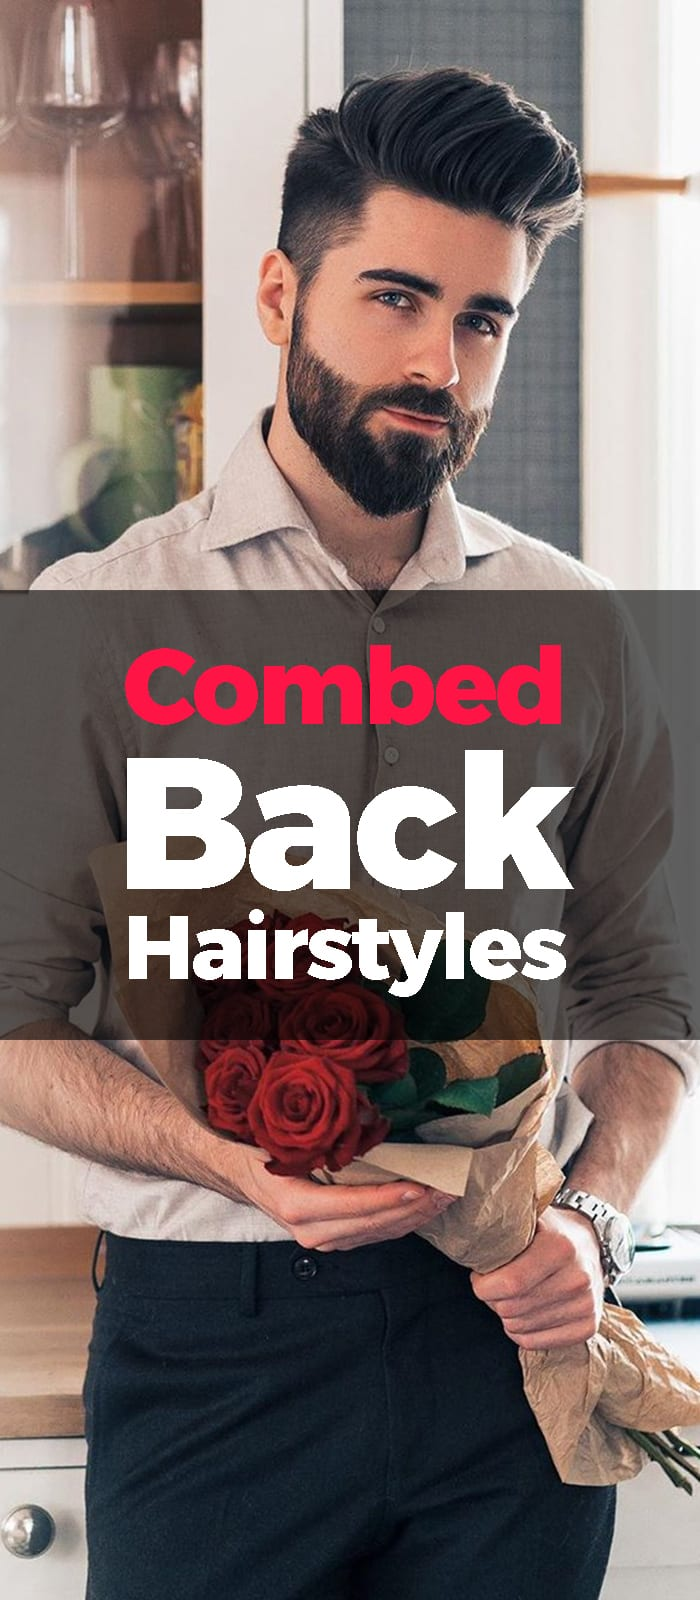 Combed Back Hairstyle with beards